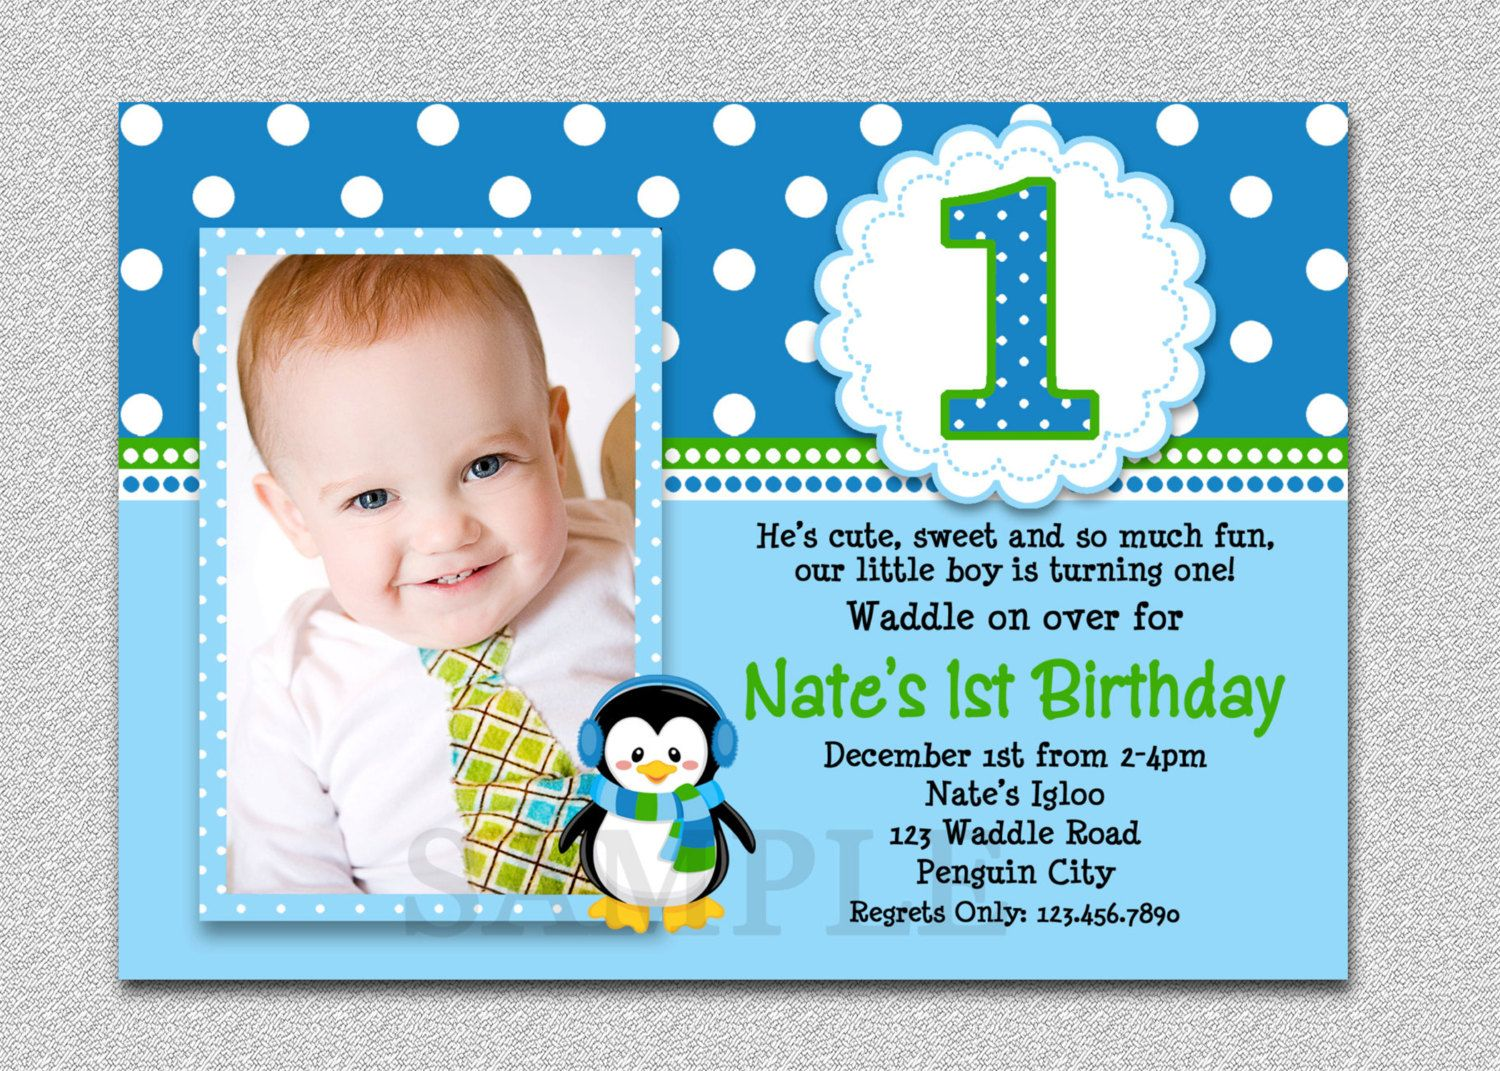 1st birthday invitation template juvecenitdelacabrera 1st birthday invitation template filmwisefo